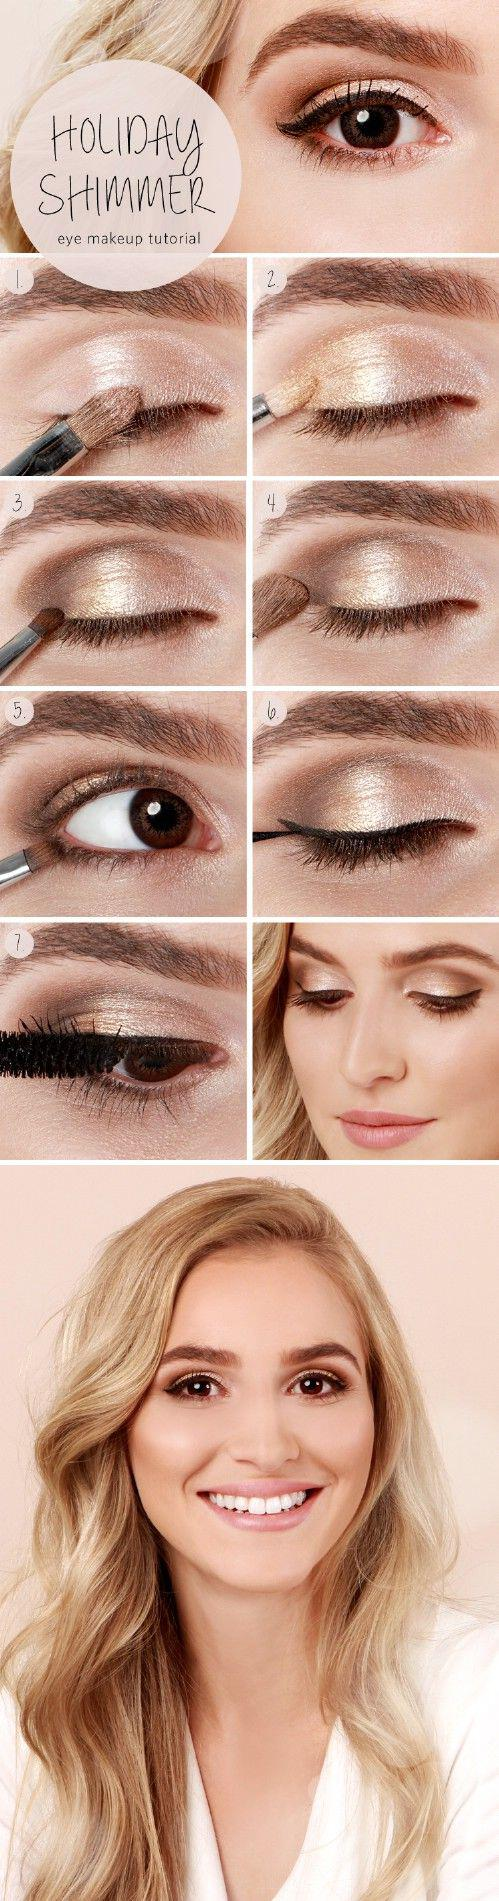 5-small-makeup-tips-fabulous-christmas